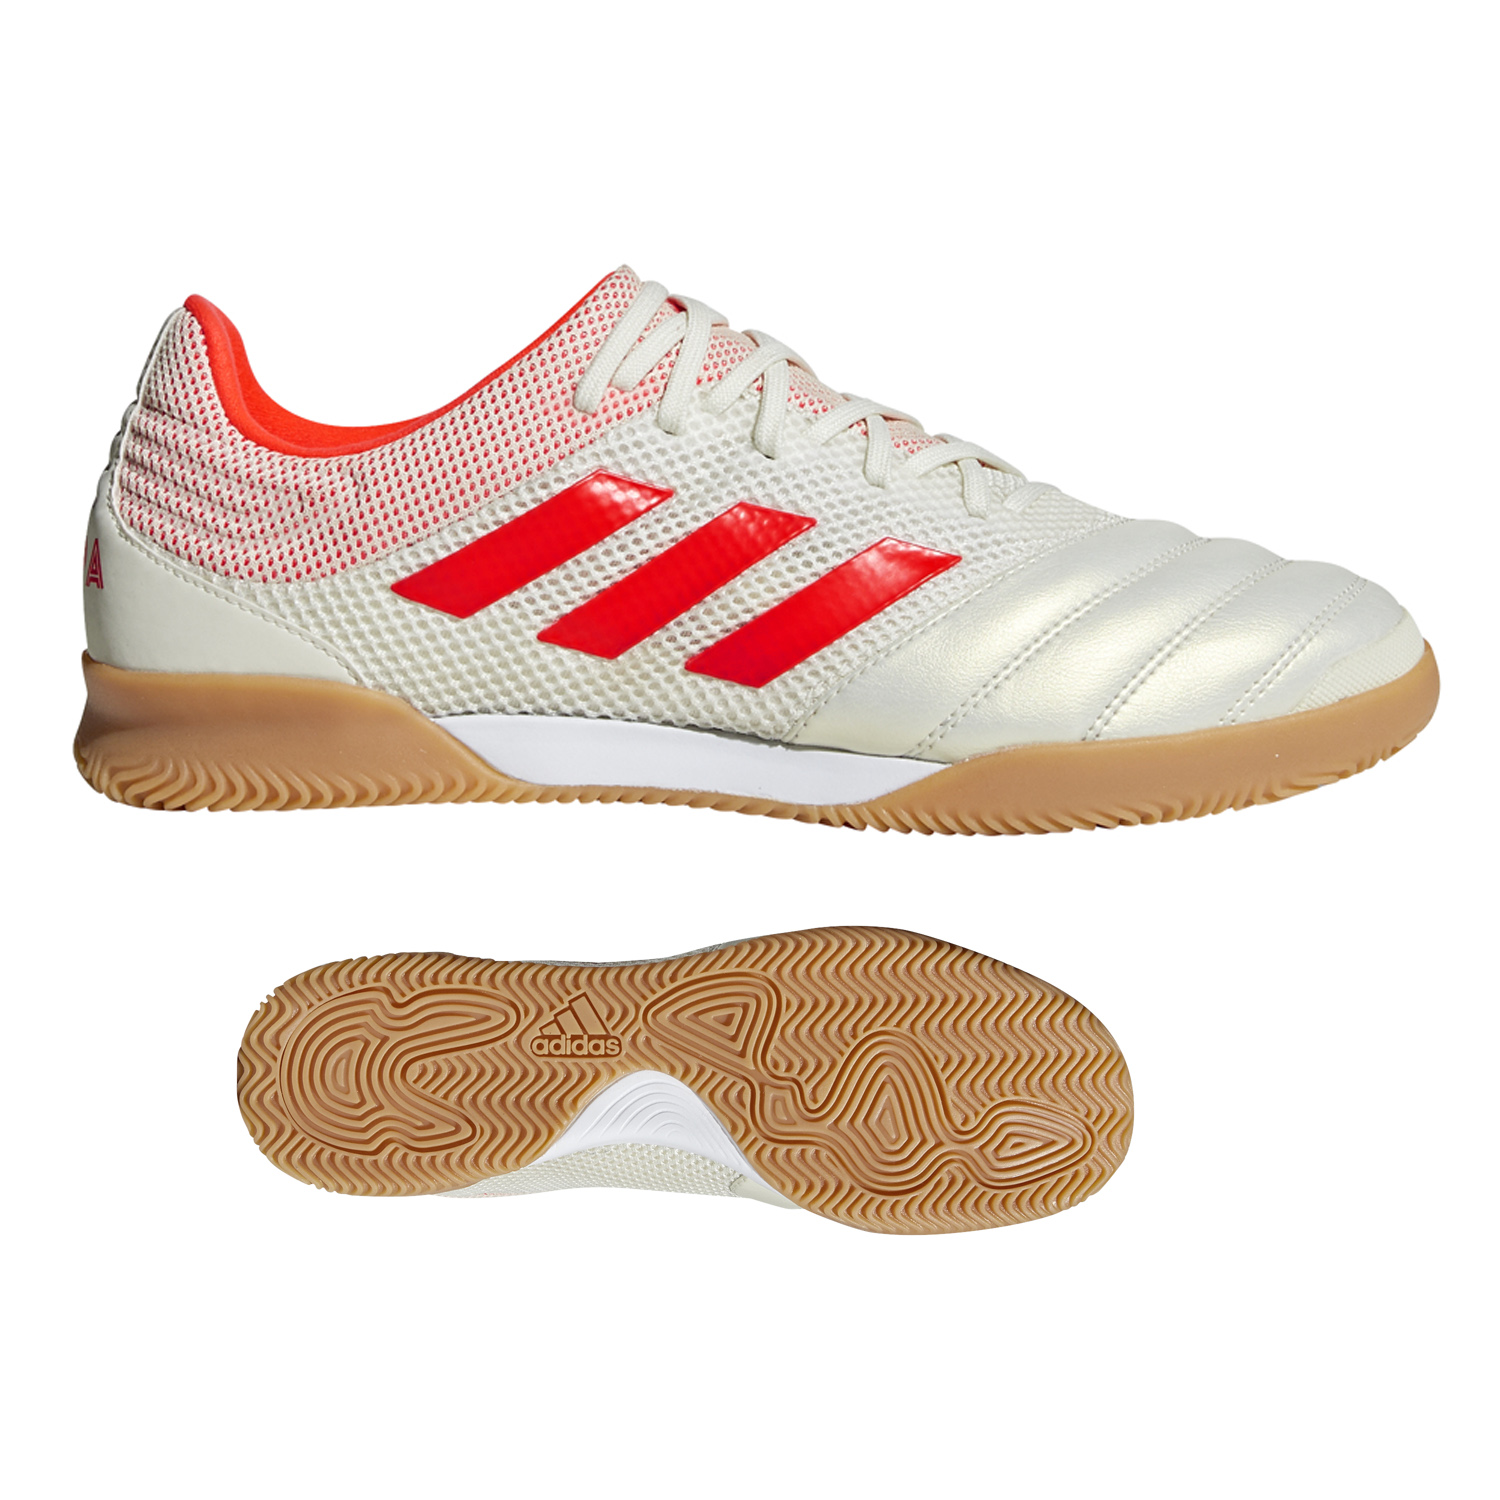 59419c5e5 adidas Copa 19.3 Indoor Soccer Shoes (Off White Solar Red ...